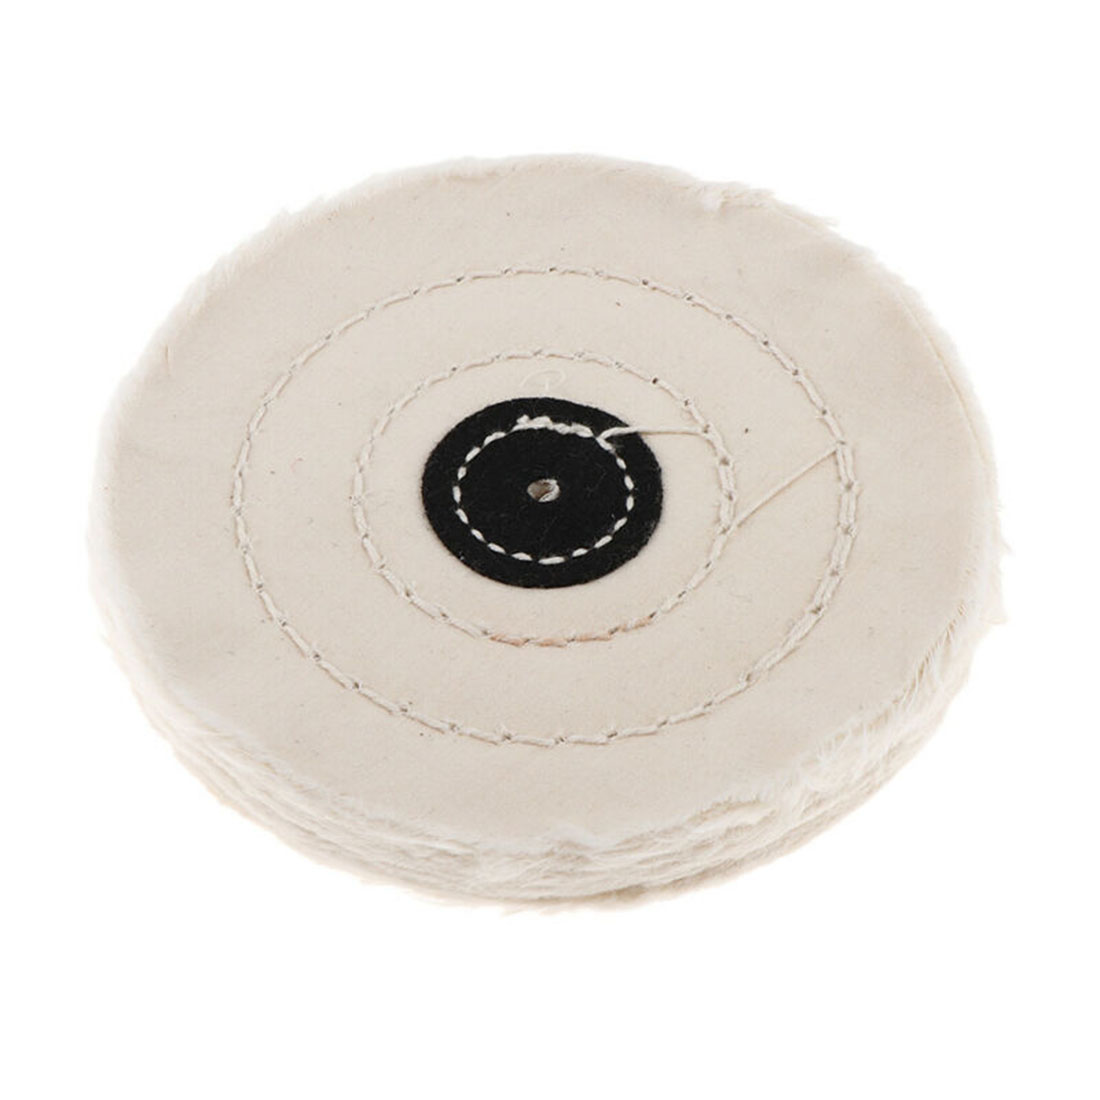 5inch 50 Layer Cotton Cloth Buffing Wheel Pad Polishing Jewelry Accessories Wood Pad Abrasive Accessories For Metal Jewelry